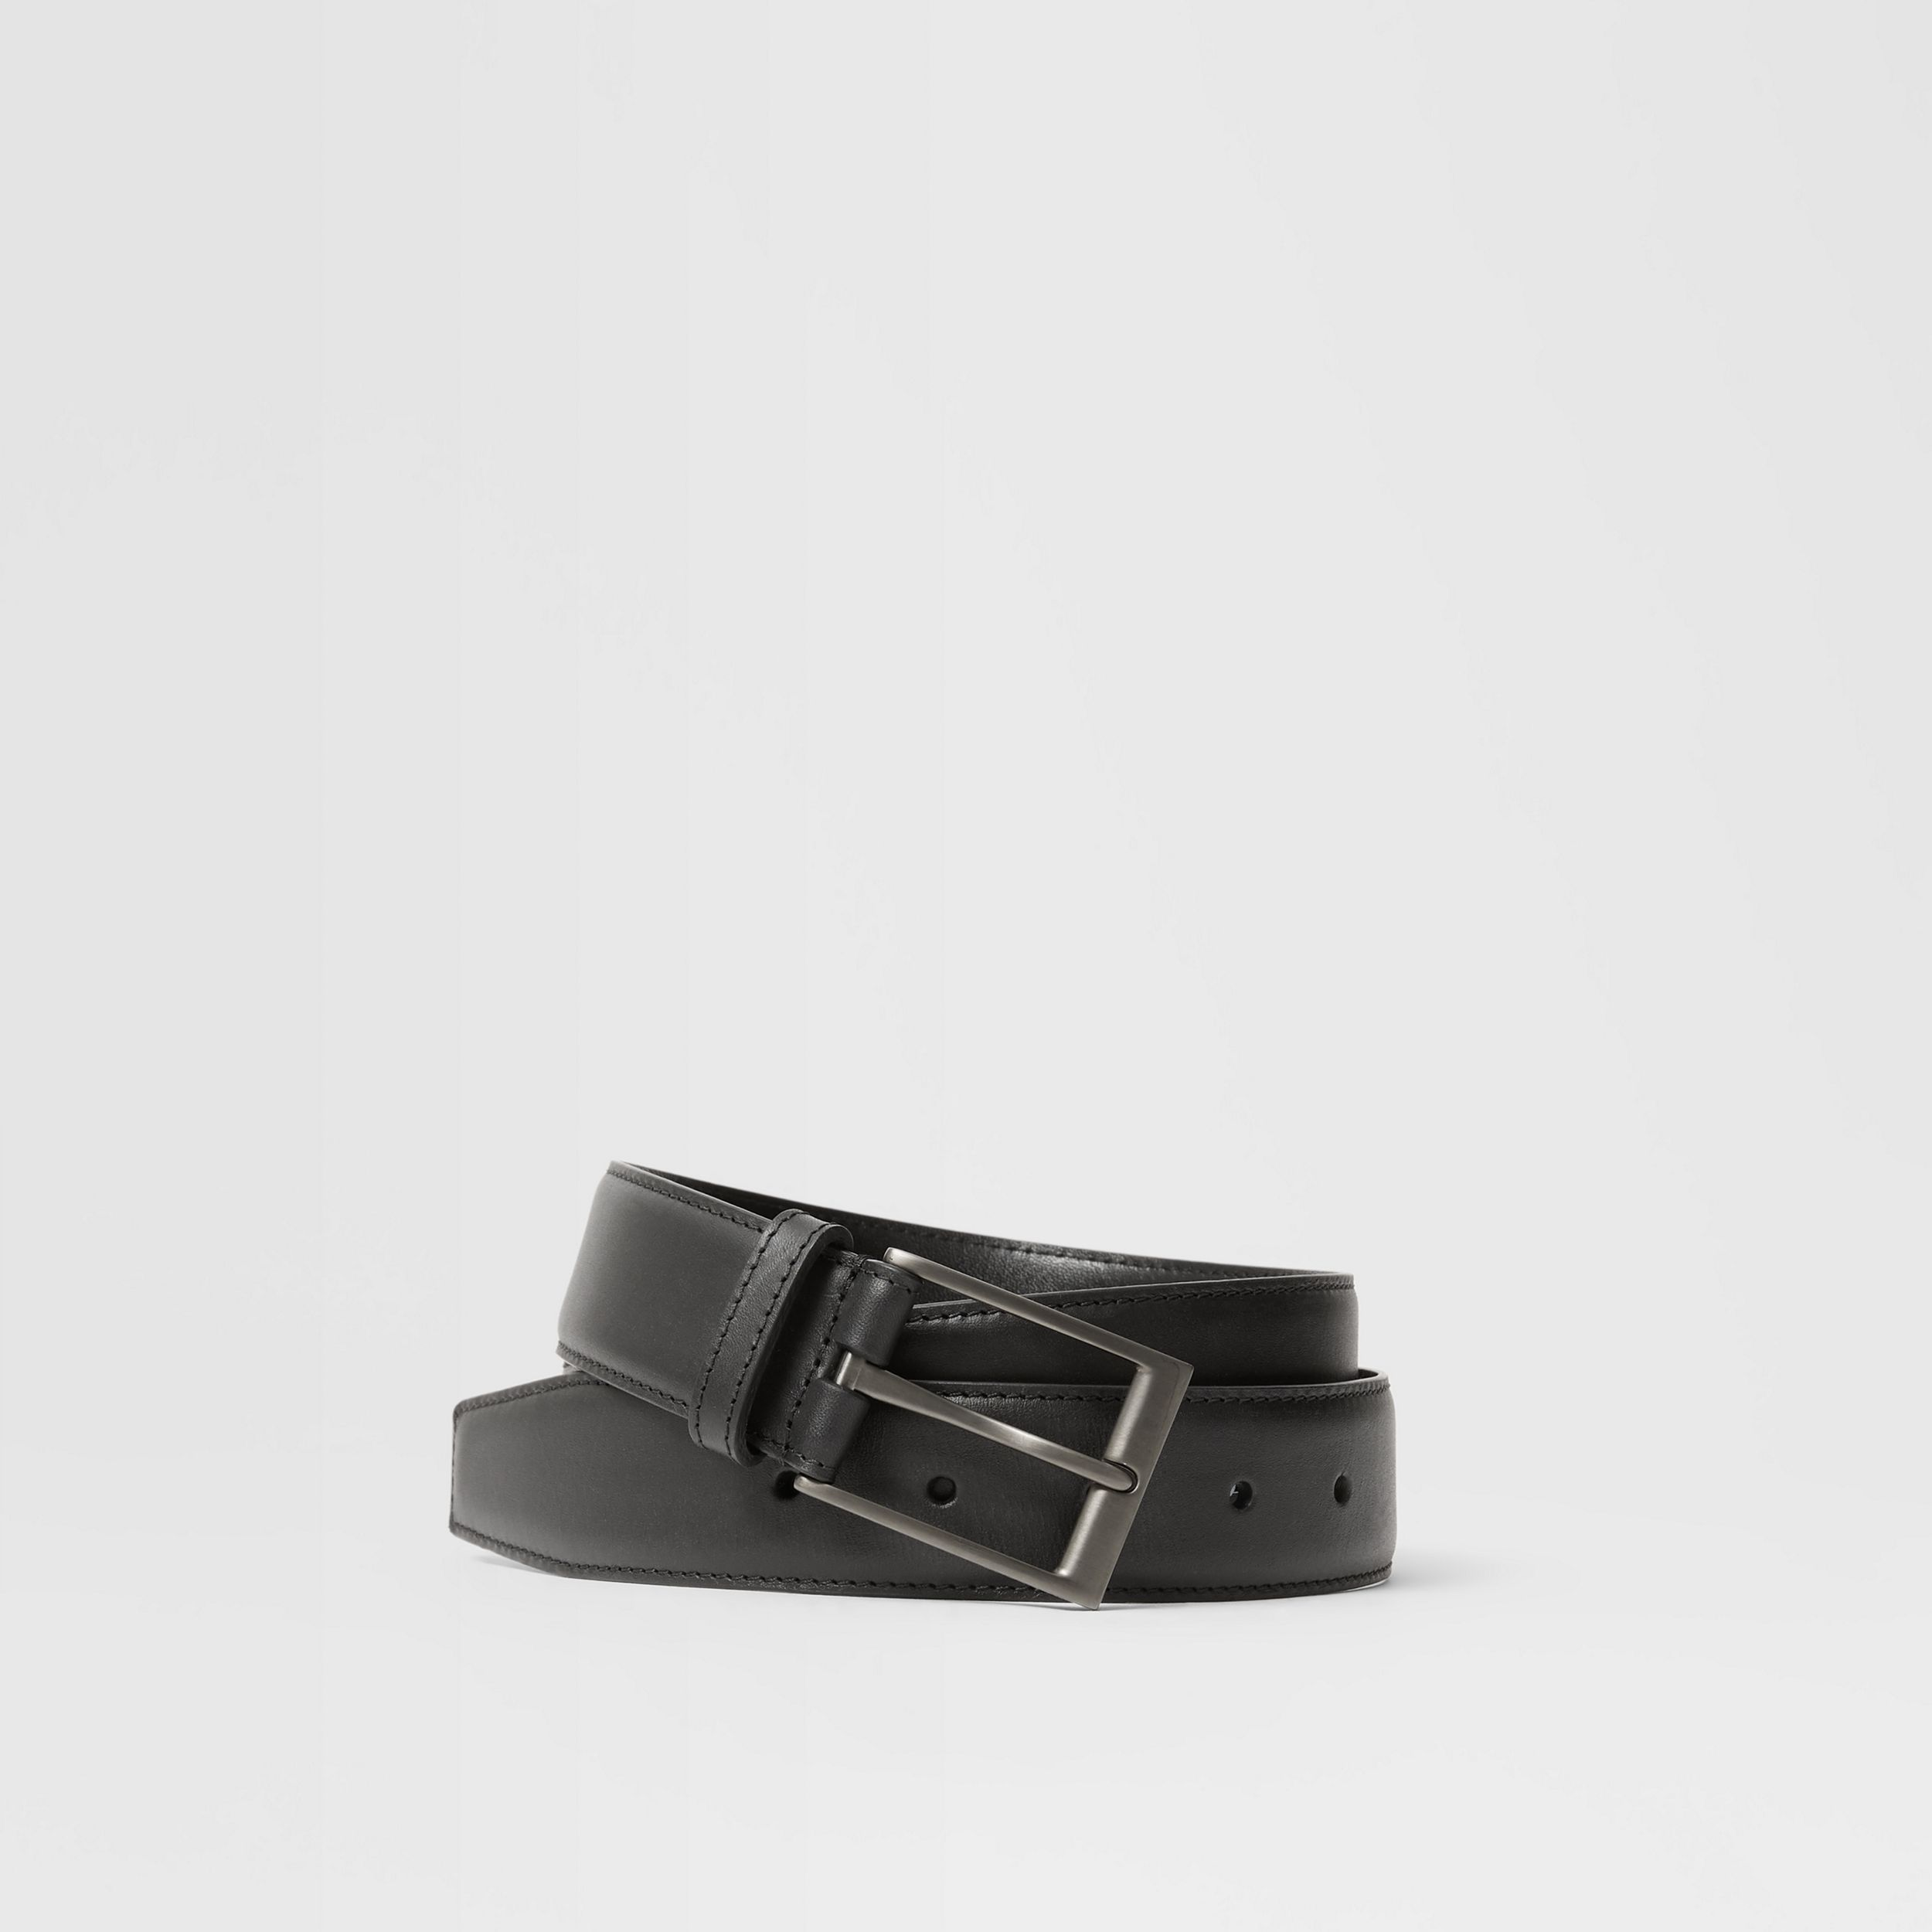 Leather Belt in Black - Men | Burberry Australia - 1